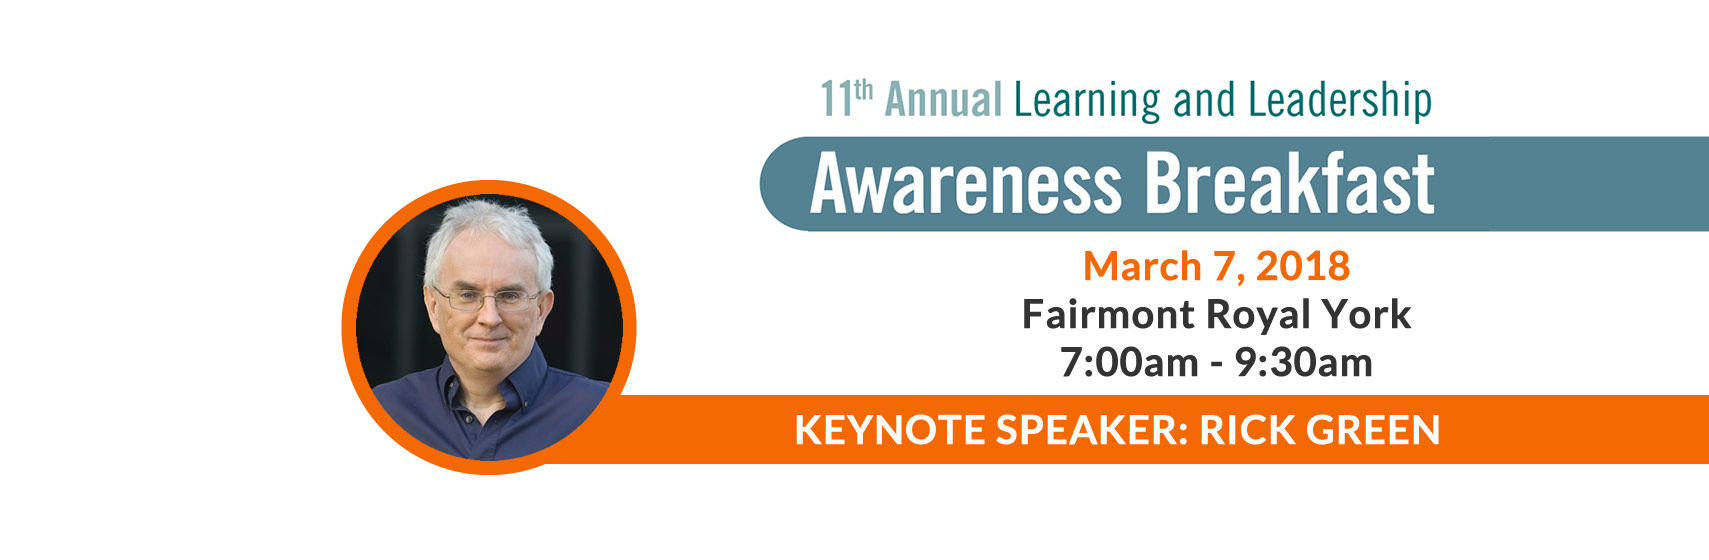 11th Annual Learning and Leadership Awareness Breakfast